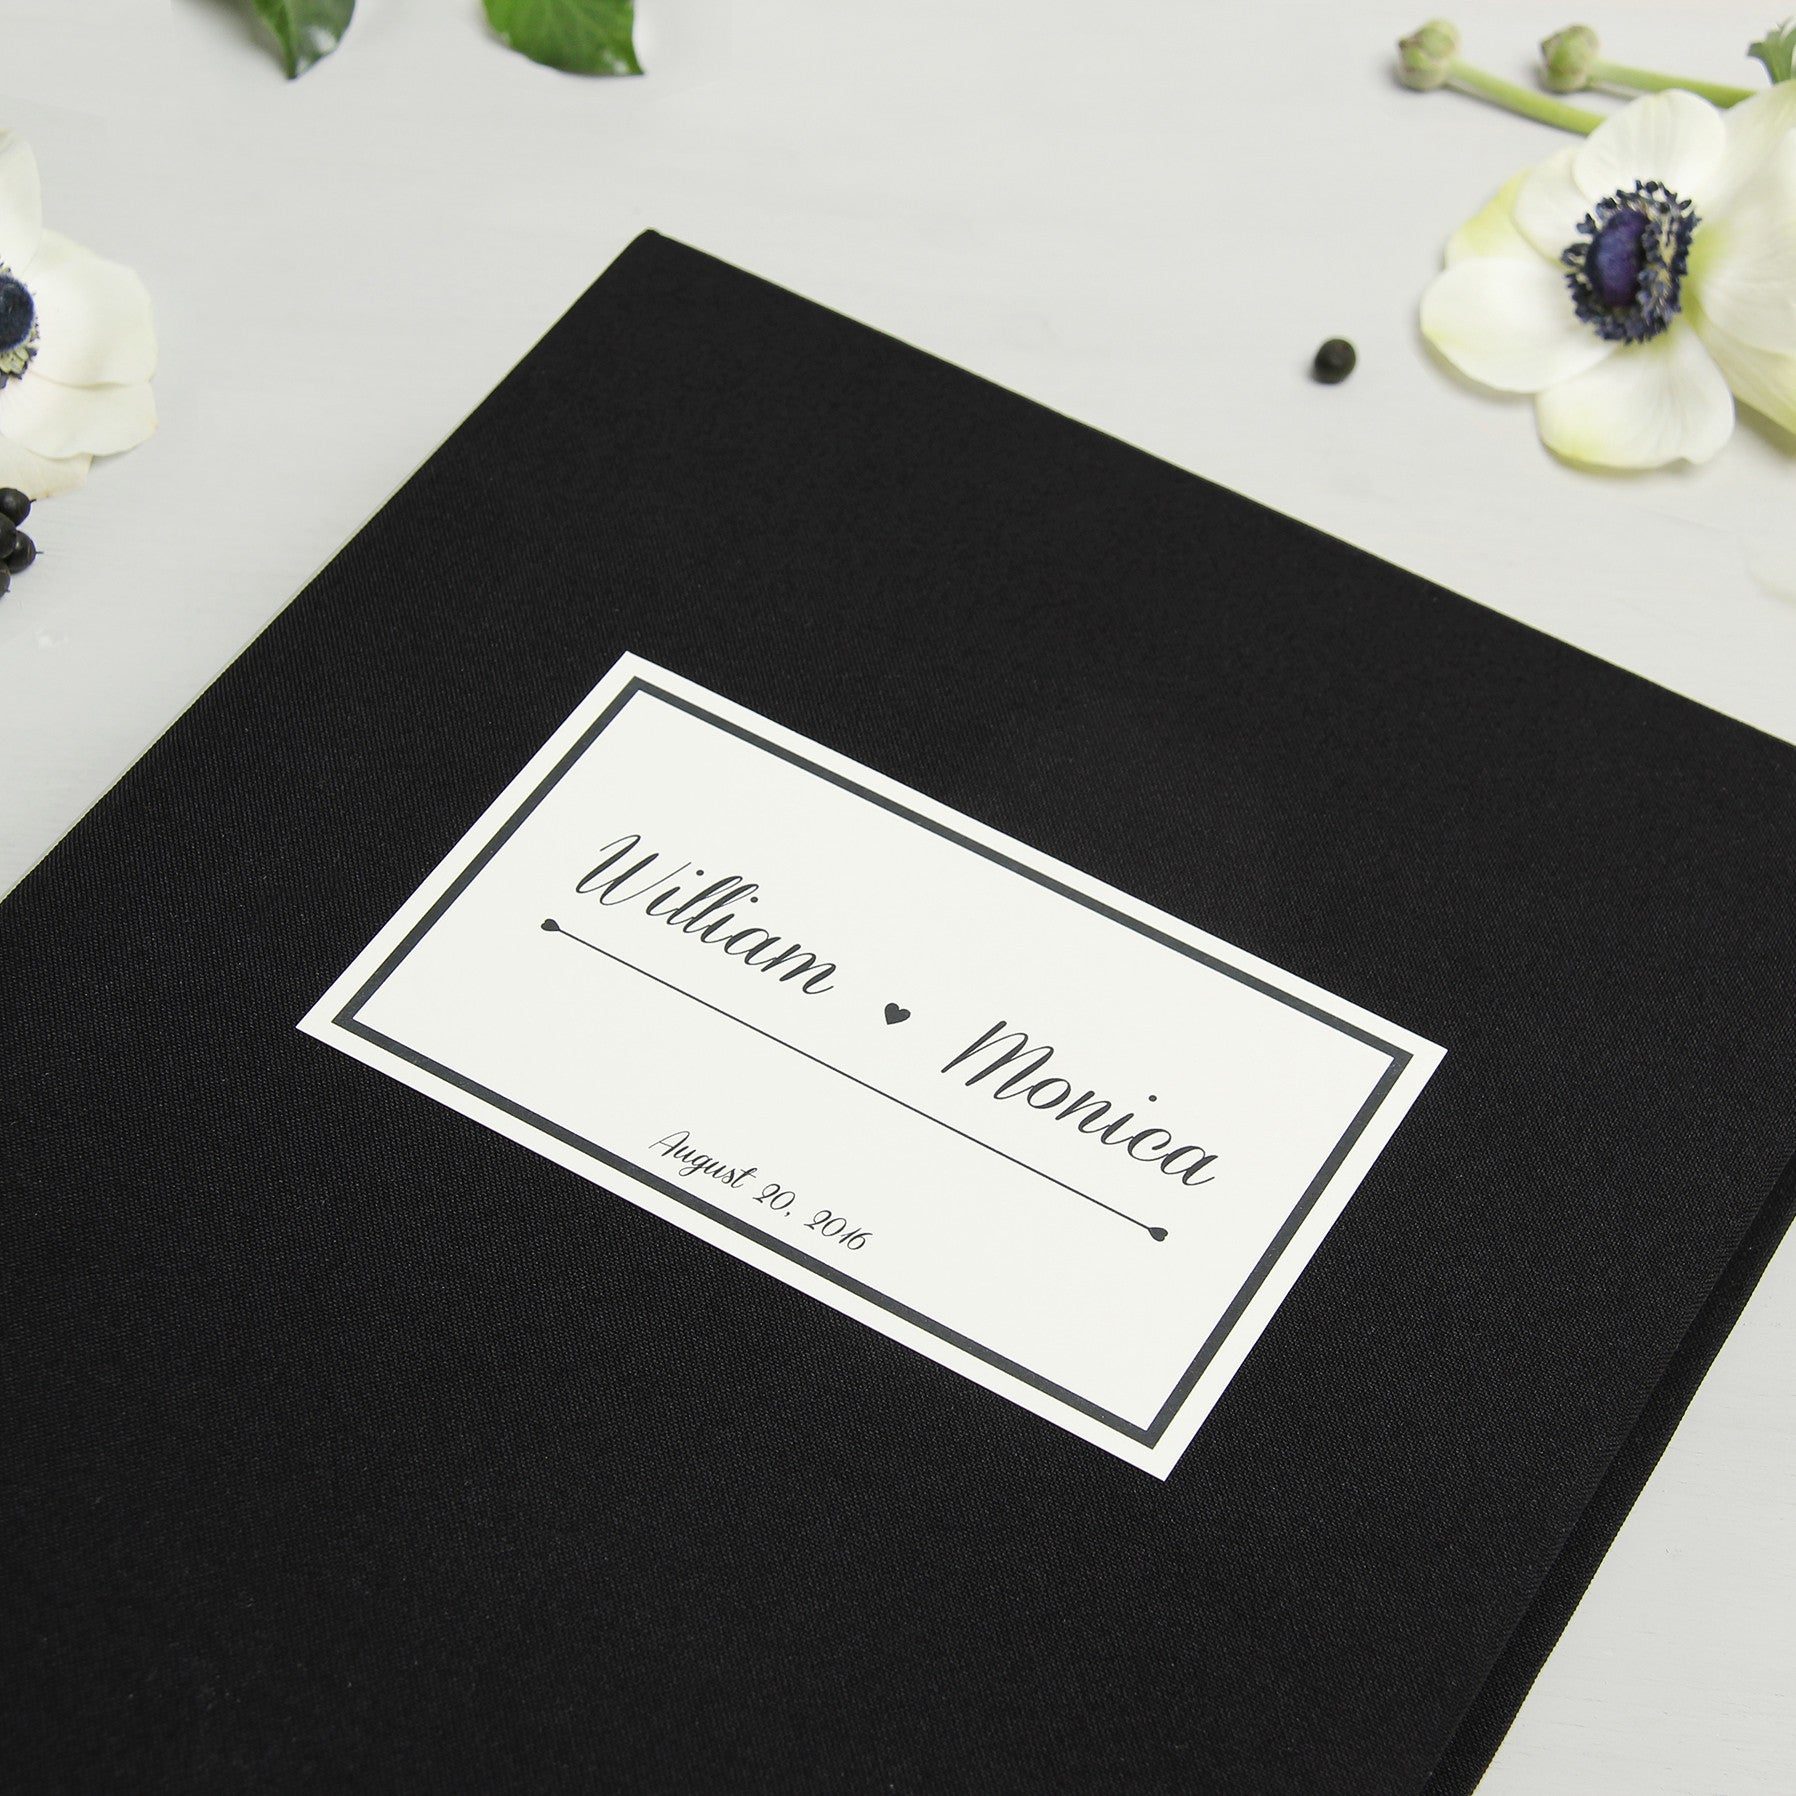 Instant Guest Book Sign in Book Album Black with Paper Label - Liumy